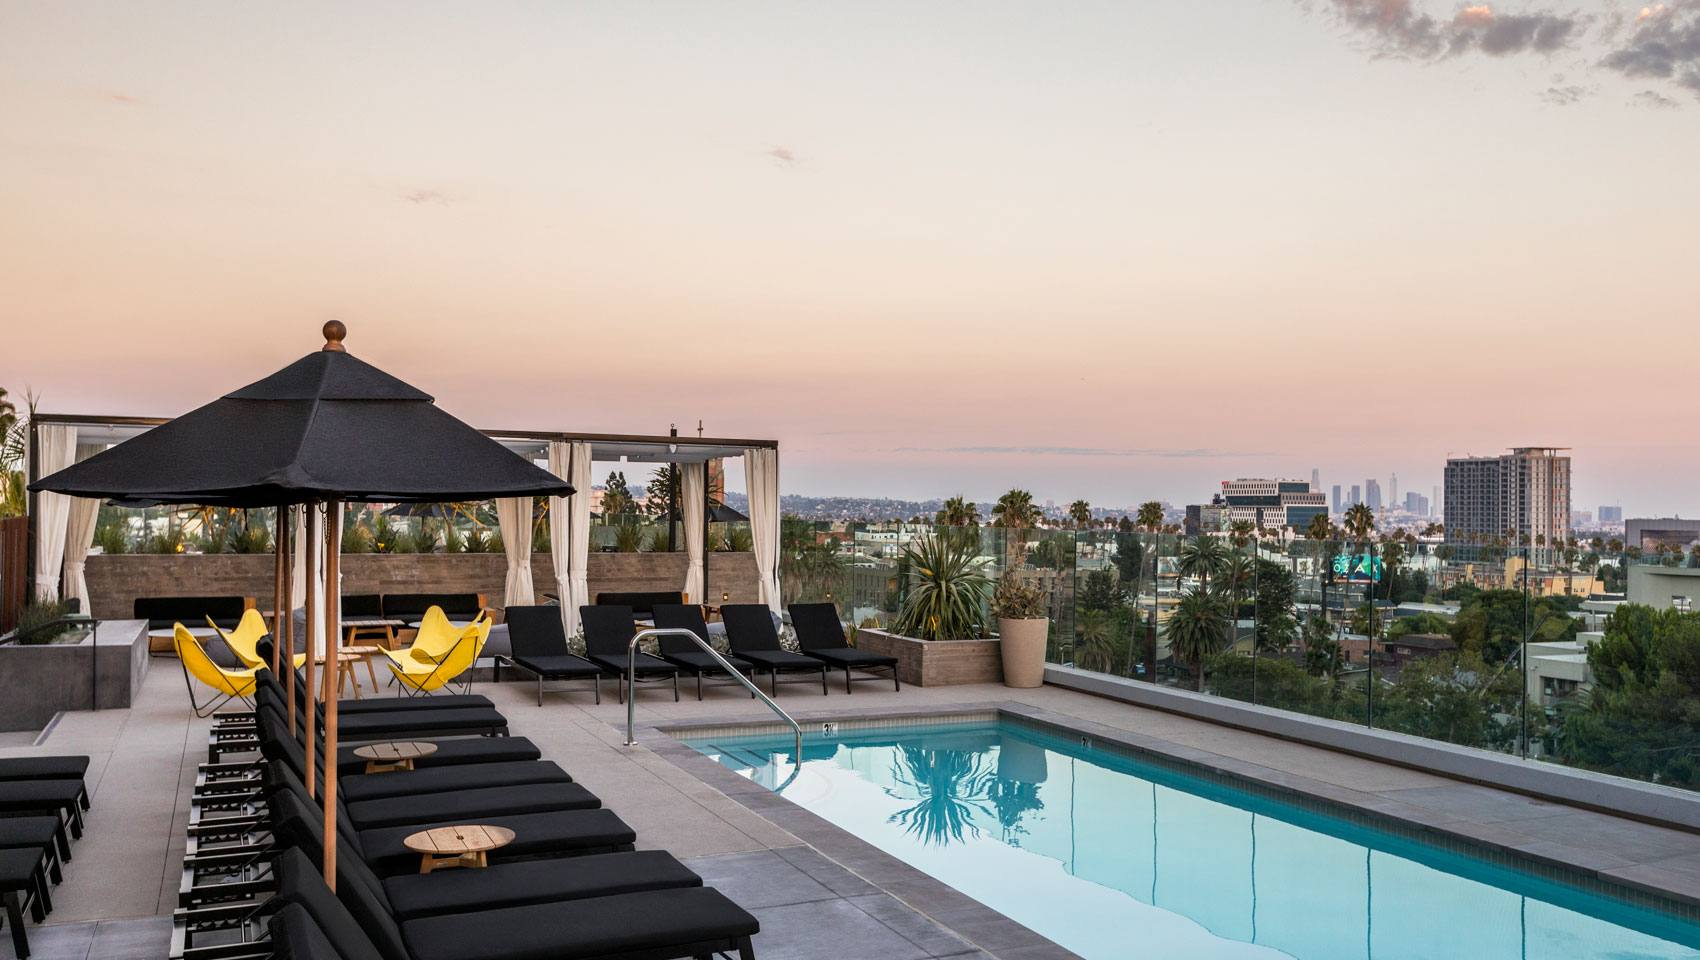 Rooftop Pool at Kimpton Everly Hollywood